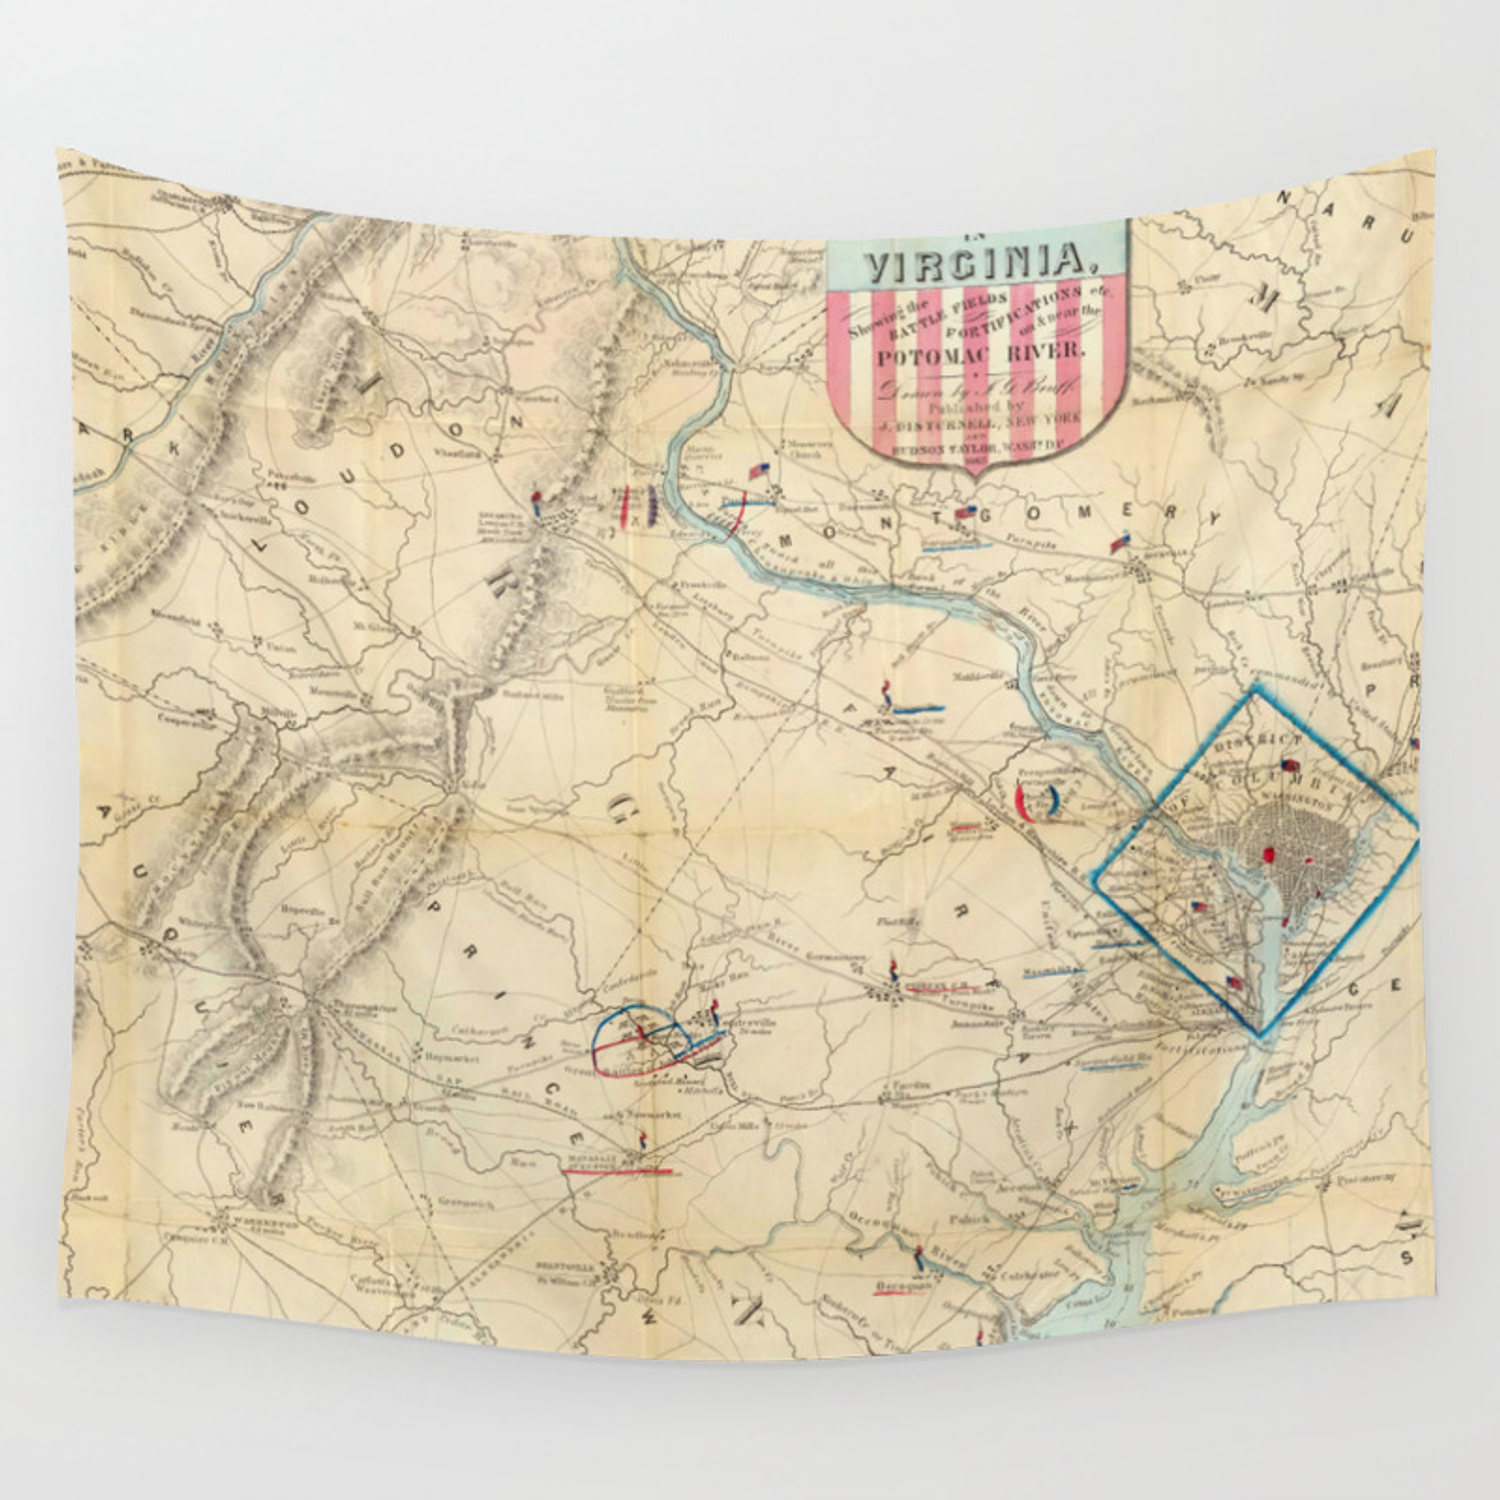 Vintage Northern Virginia Civil War Map (1862) Wall Tapestry on georgia virginia map, colonial virginia map, fredericksburg va map, central virginia state map, county of va counties map, virginia meissner trail map, columbia gas of virginia map, slavery in 1860 virginia map, united states virginia map, battle of chancellorsville virginia map, american flag virginia map, manakin town virginia map, battle of richmond virginia map, california virginia map, 5 regions virginia map, petersburg virginia state map, hwy 58 virginia map, powell river virginia map, aquia creek virginia map, new york virginia map,